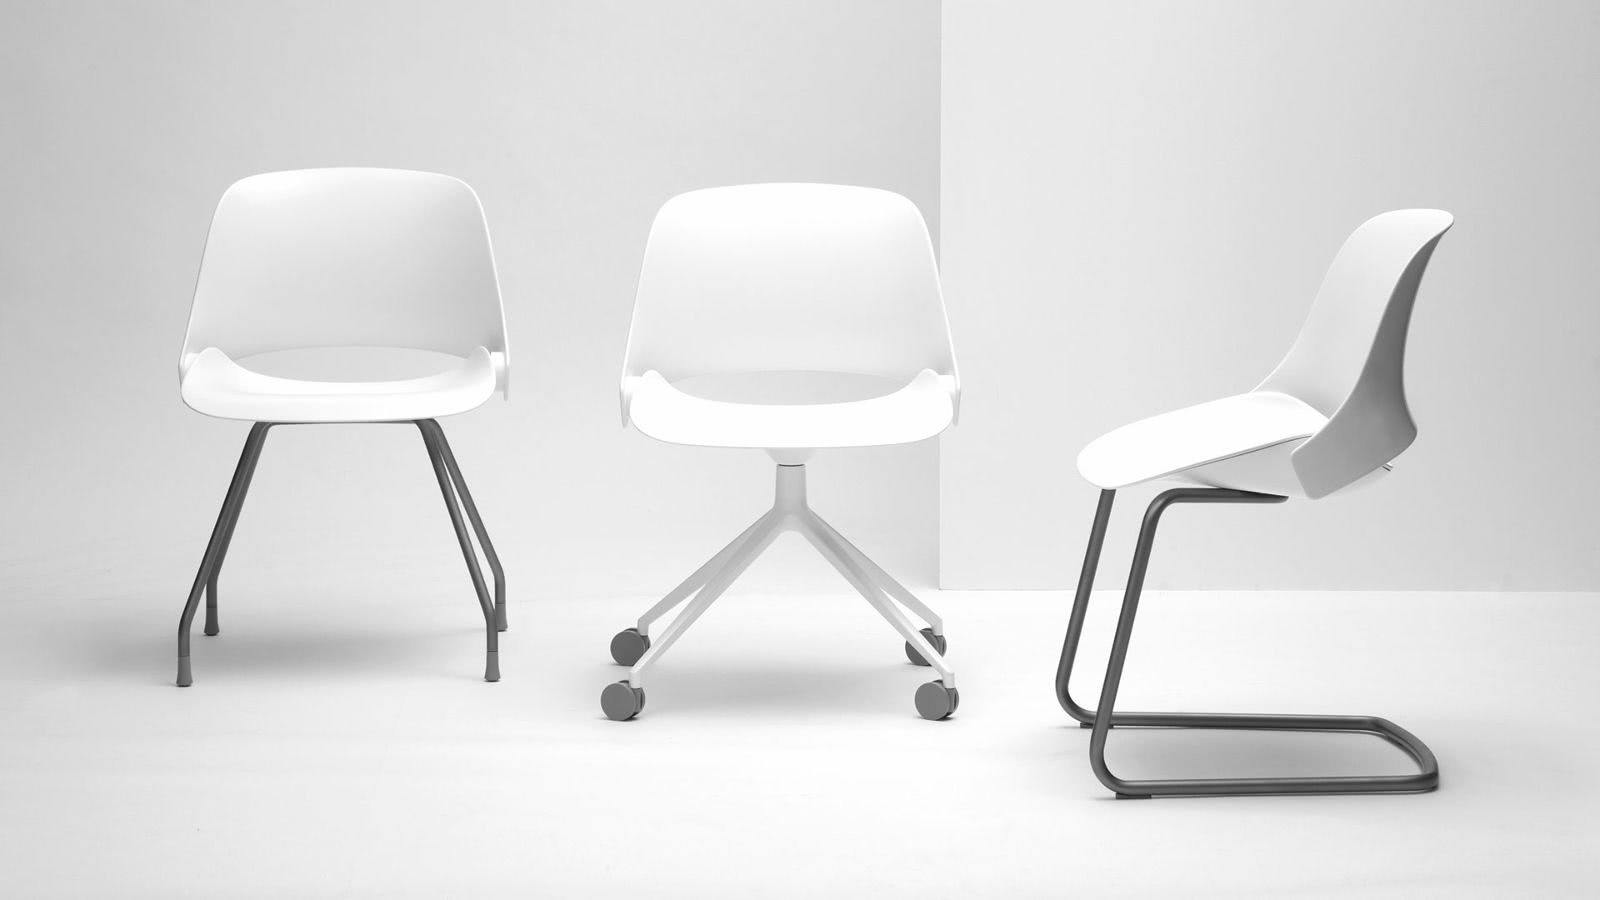 out moves recline humanscale with when place headrest s uplift chair the sensitive into desk of and freedom position you